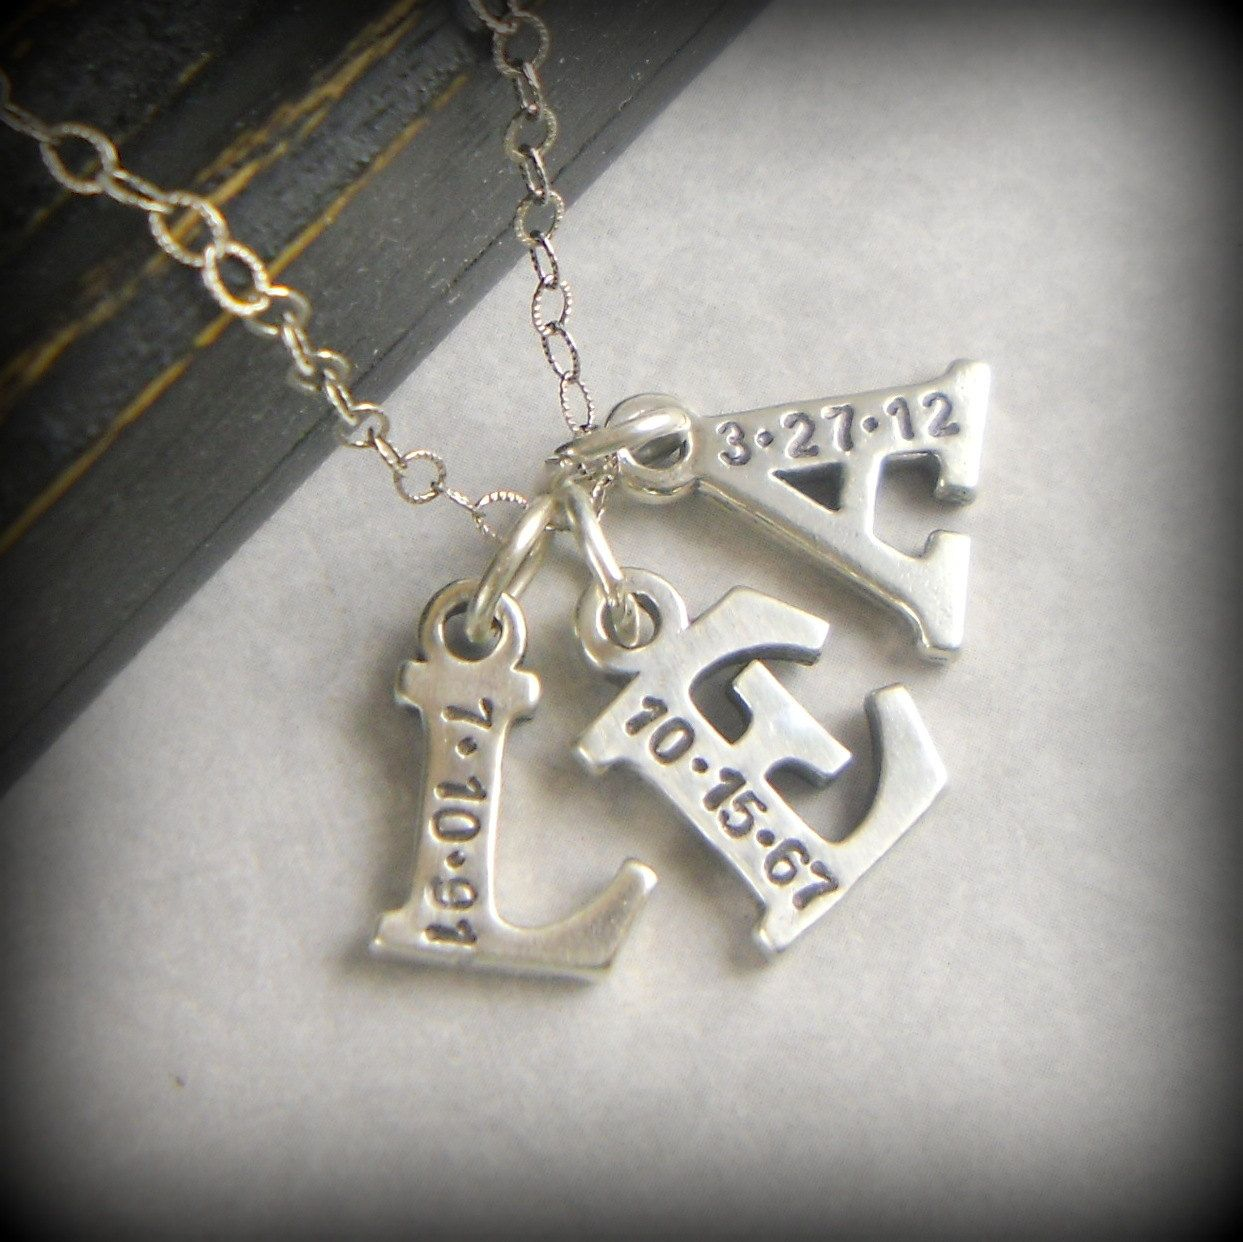 Personalized 18th Birthday Necklace Initial Custom: Initial Necklace, Gift For Mom, Personalized Initials